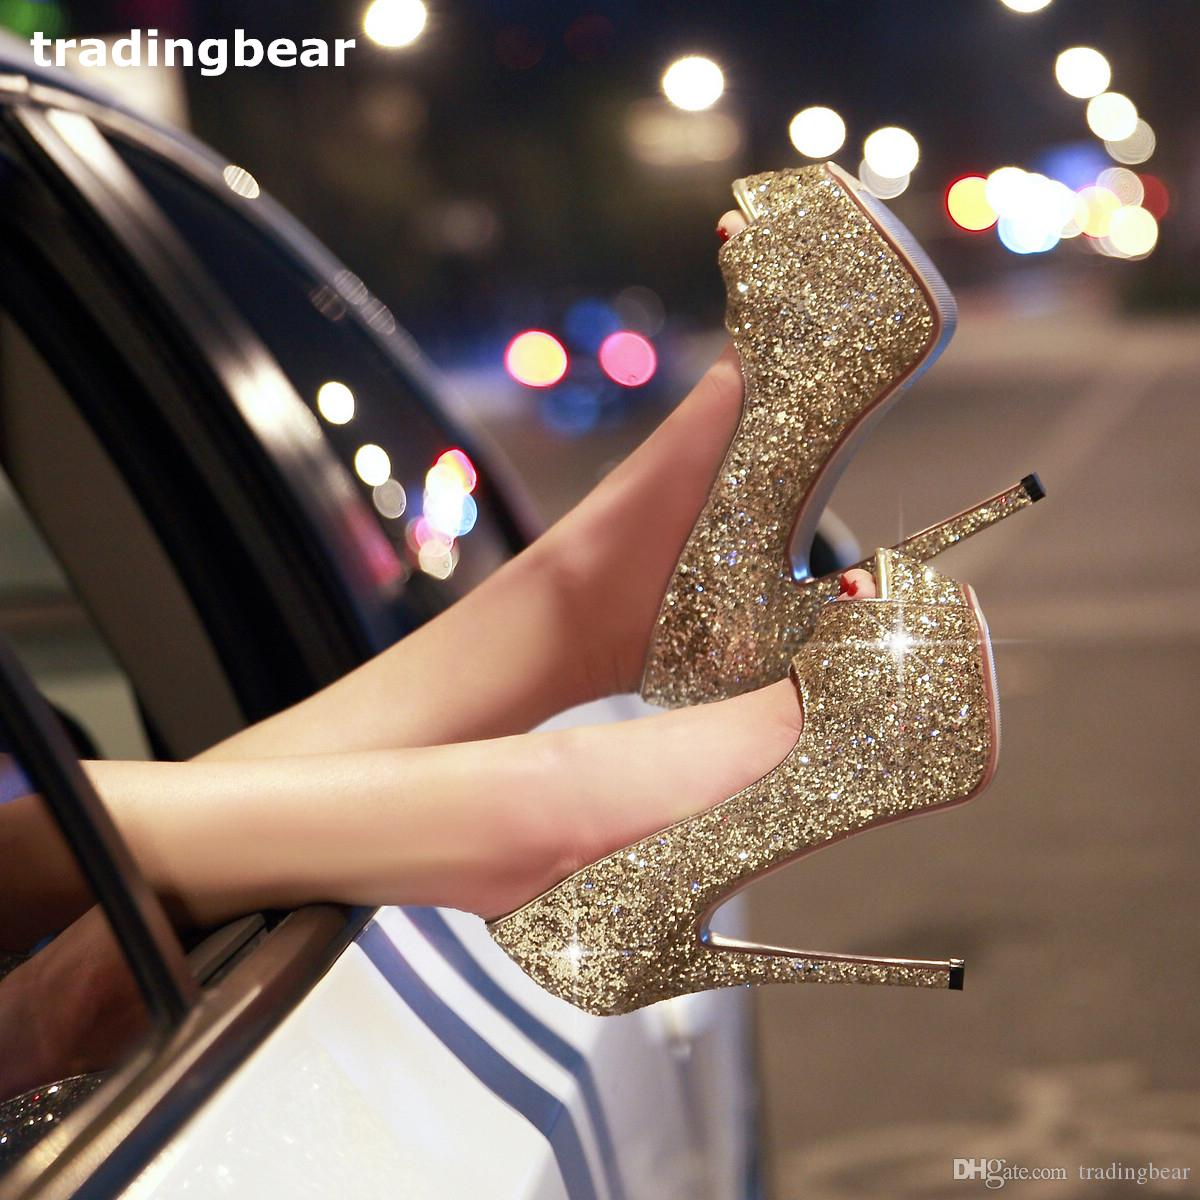 7096daebc7 Small Big Size Sexy Women Men Peep Toe Platform High Heels Wedding Shoes  Gold Silver Glitter Sequined Stiletto Pumps Loafer Shoes Shoes Uk From  Tradingbear, ...